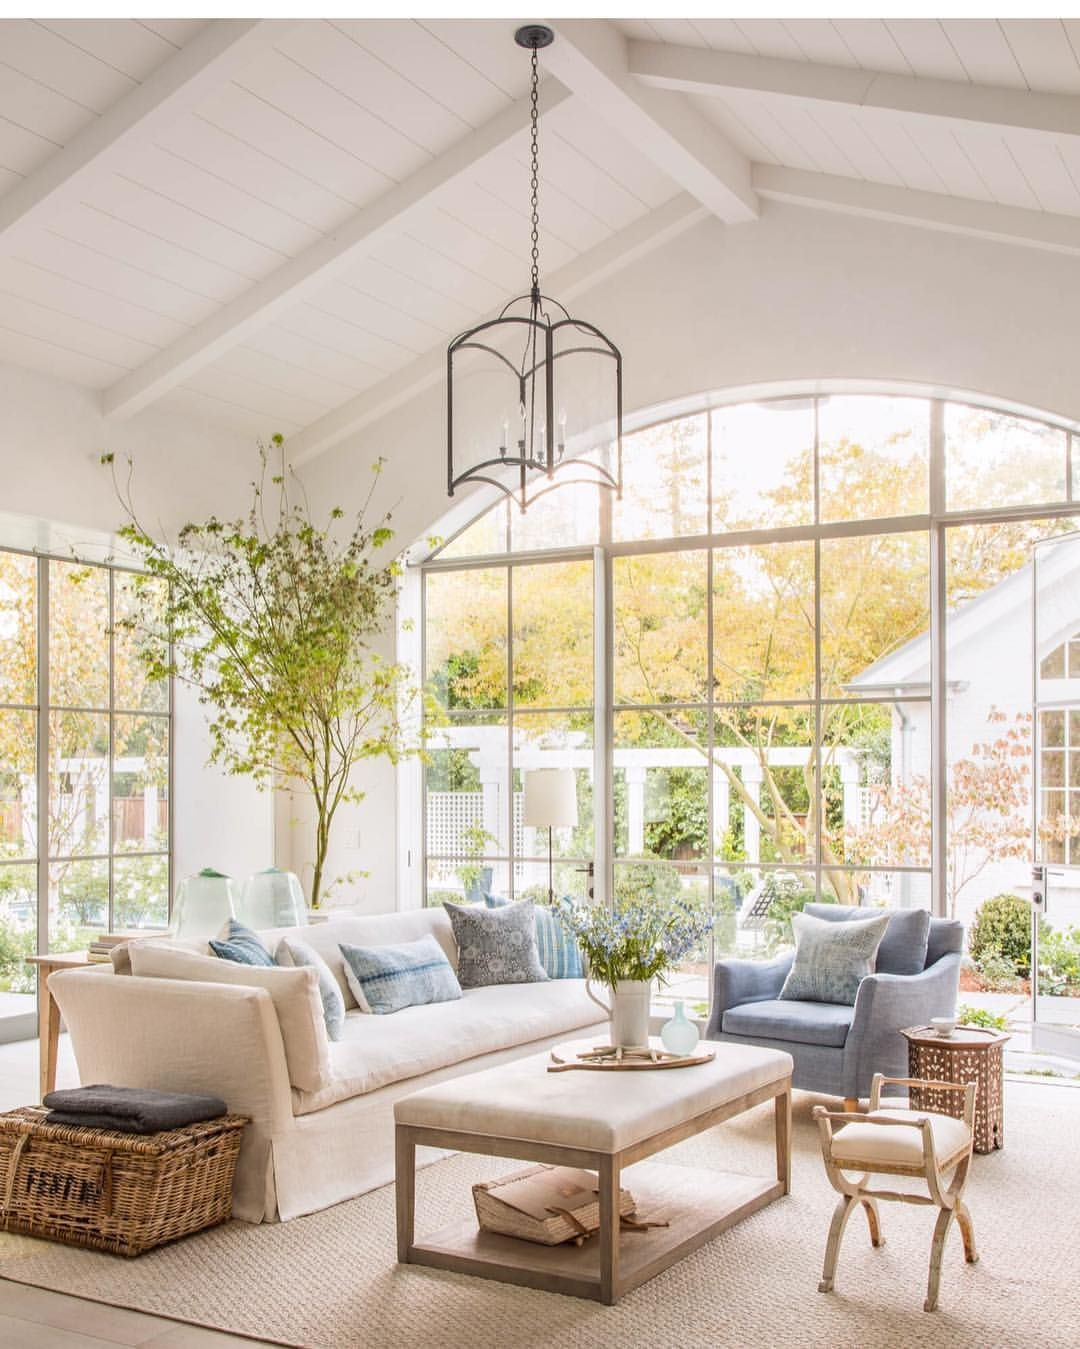 Stunning Sunroom Design Ideas. Sunroom likewise called a sun ...